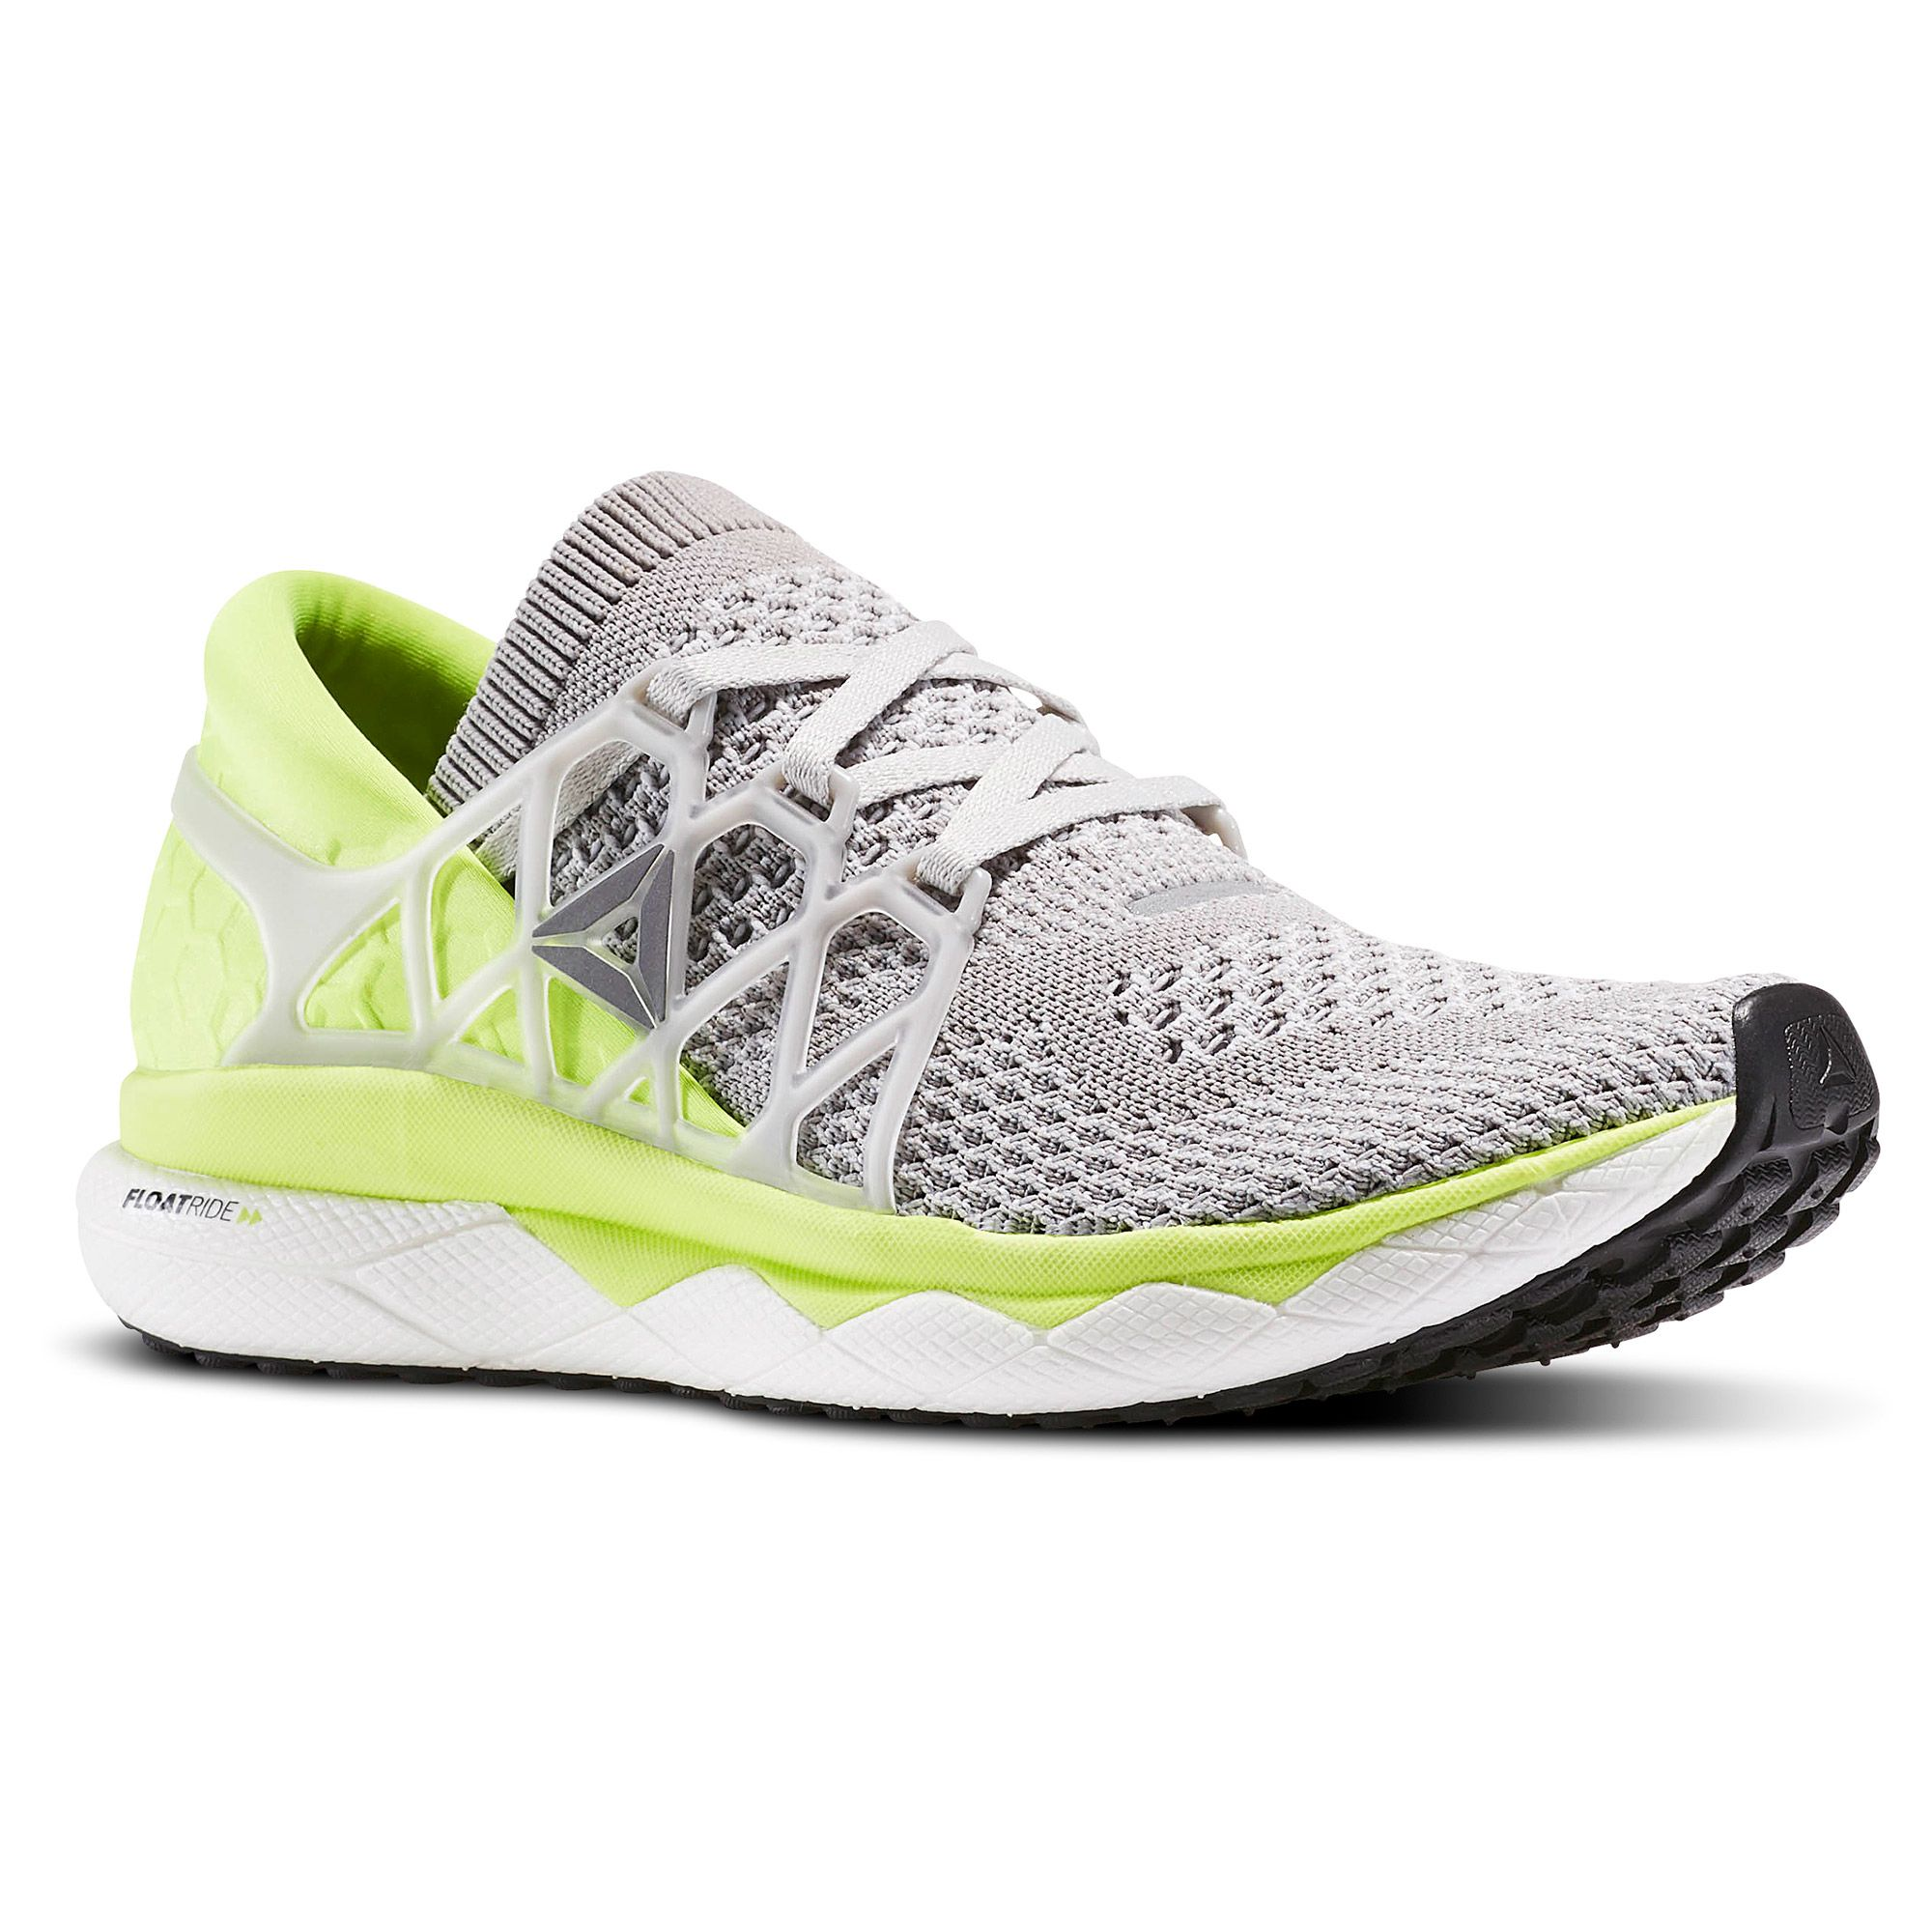 Get A Free Pair of Reebok Floatride Shoes!